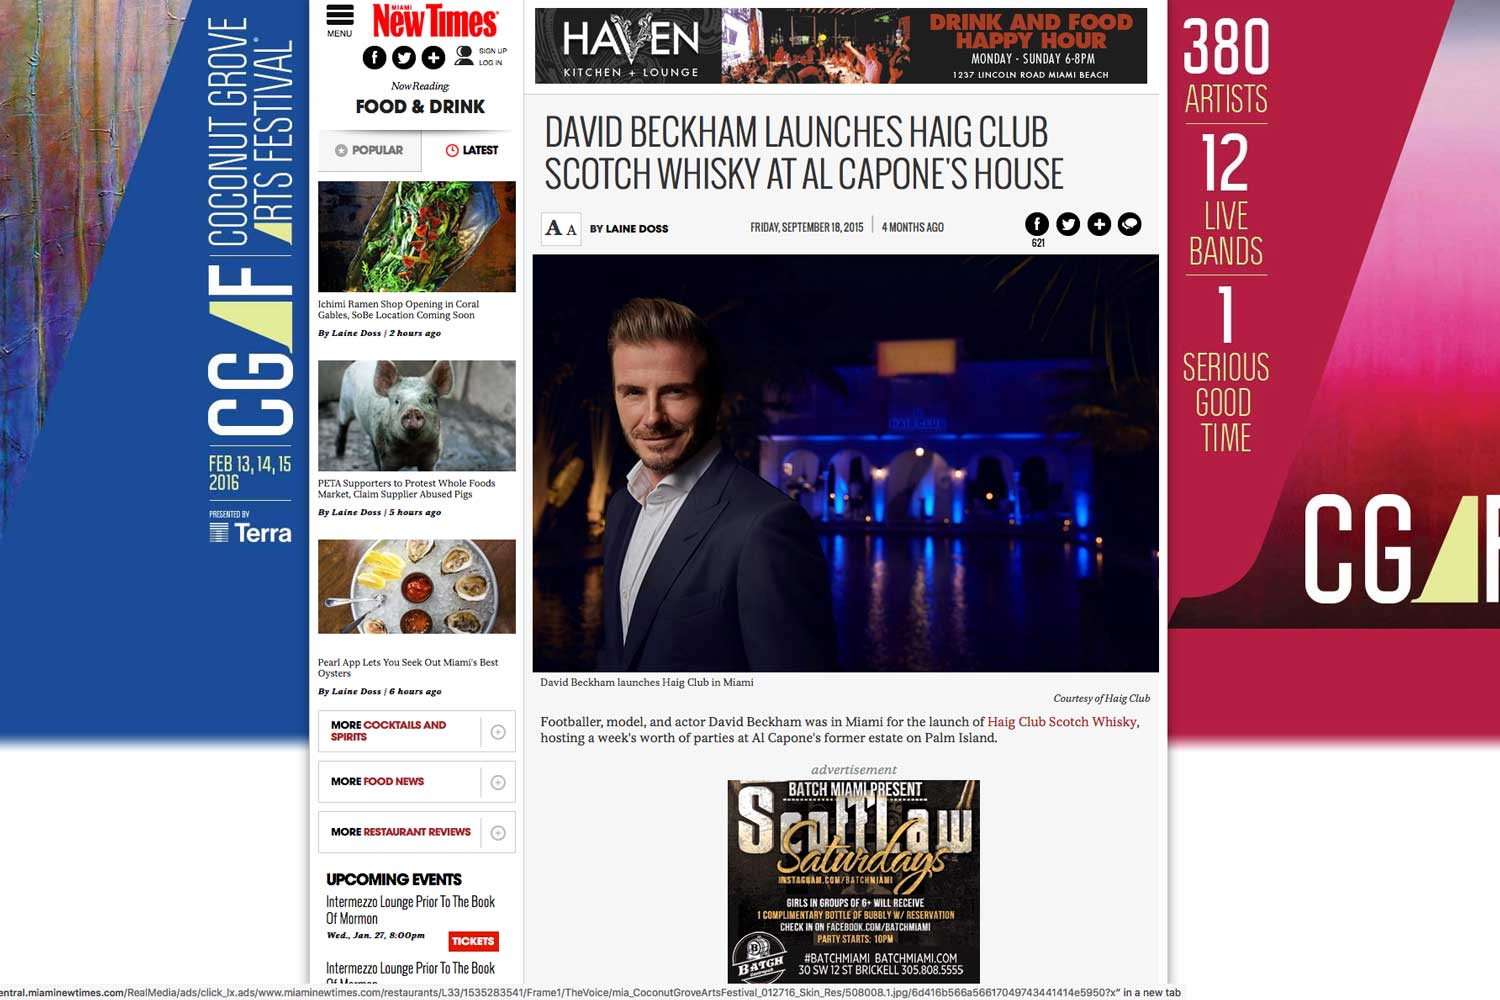 """<p><strong>Miami New Times</strong><a href=""""http://www.miaminewtimes.com/restaurants/david-beckham-launches-haig-club-scotch-whisky-at-al-capones-house-7905327"""" target=""""_blank"""">Read Article→</a></p>"""